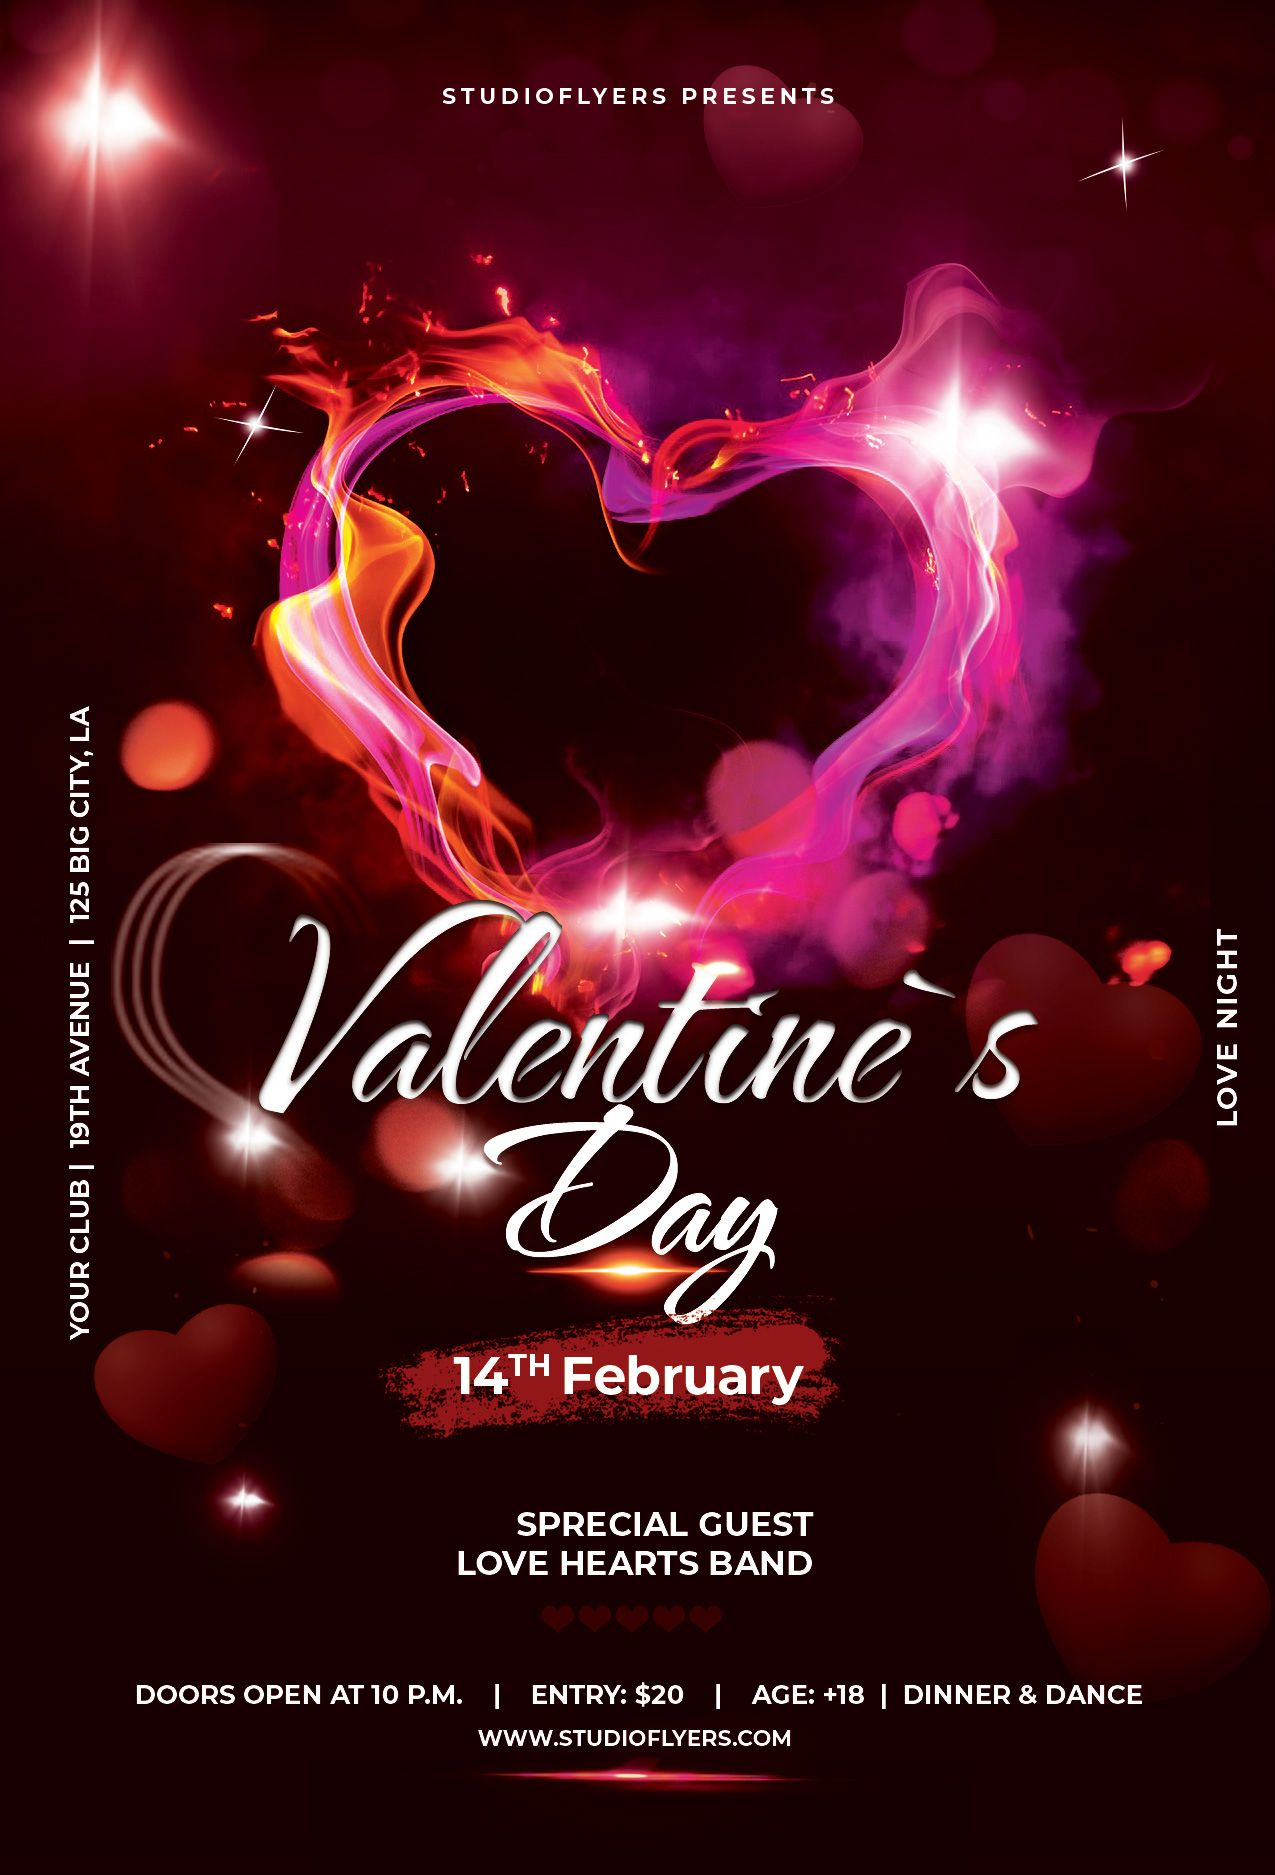 Valentines Day Free Psd Flyer Template Studioflyers Com Free Psd Flyer Templates Psd Flyer Templates Free Psd Flyer